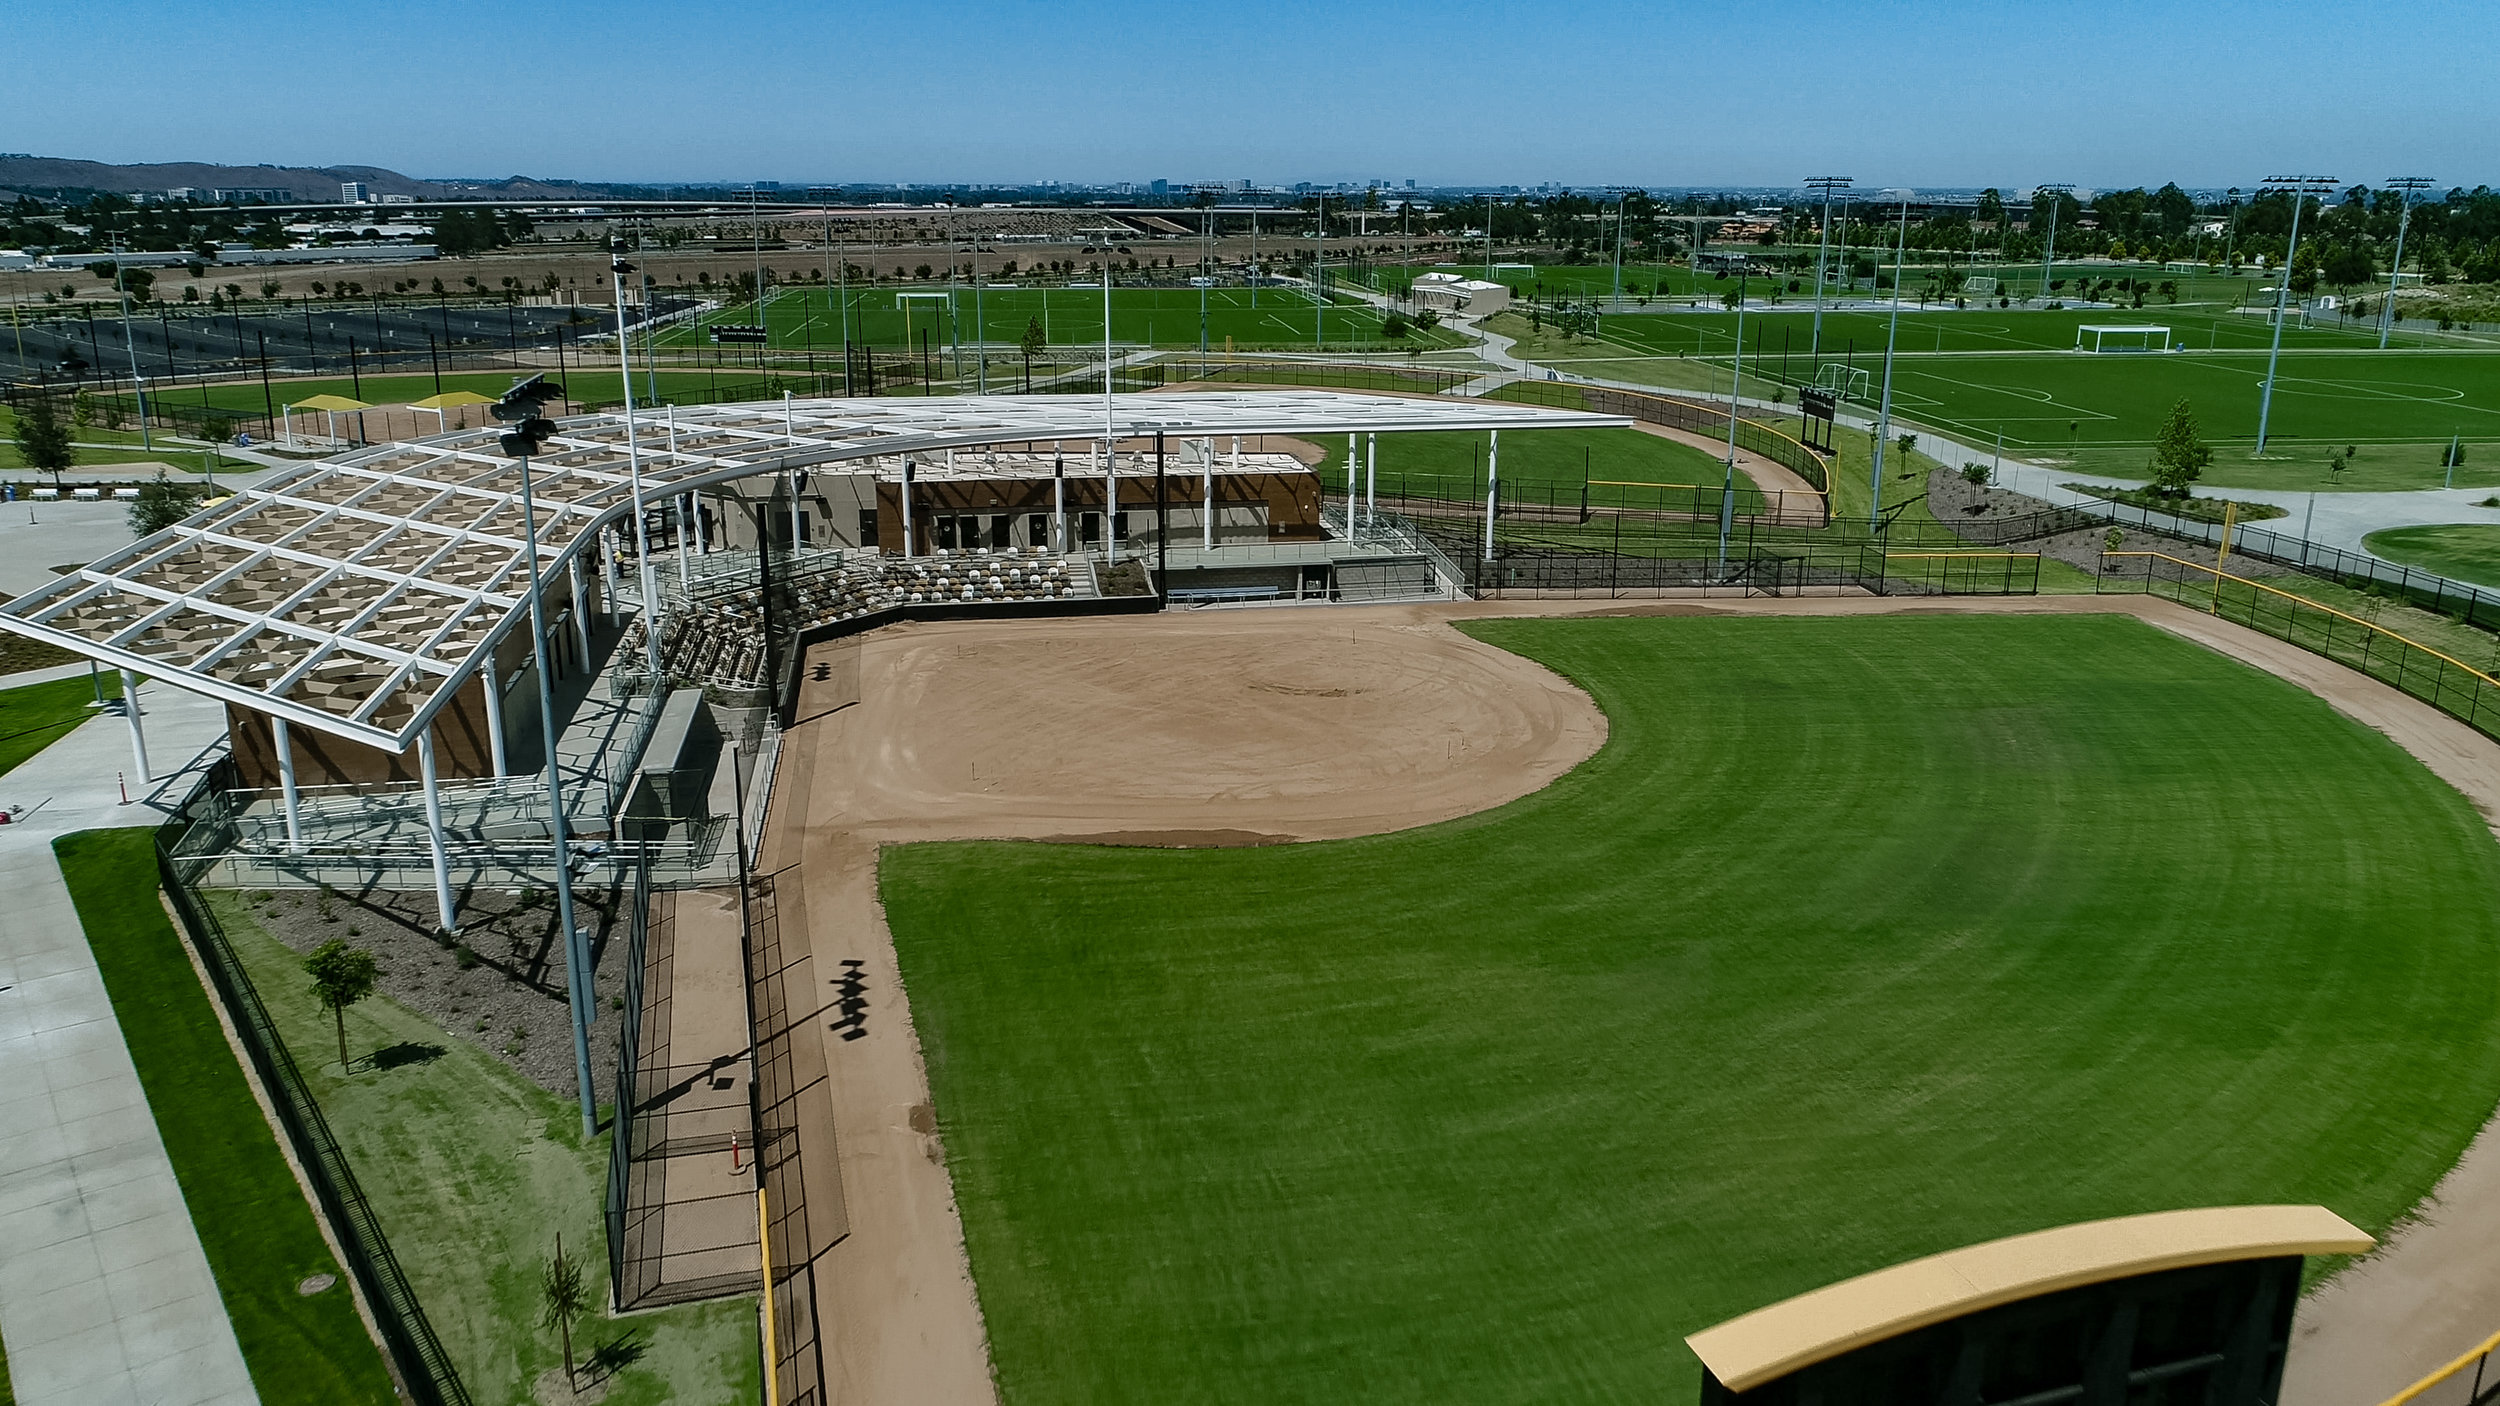 Full OCGP Sports Park Jeffrey L. Bruce 4K_22.jpg